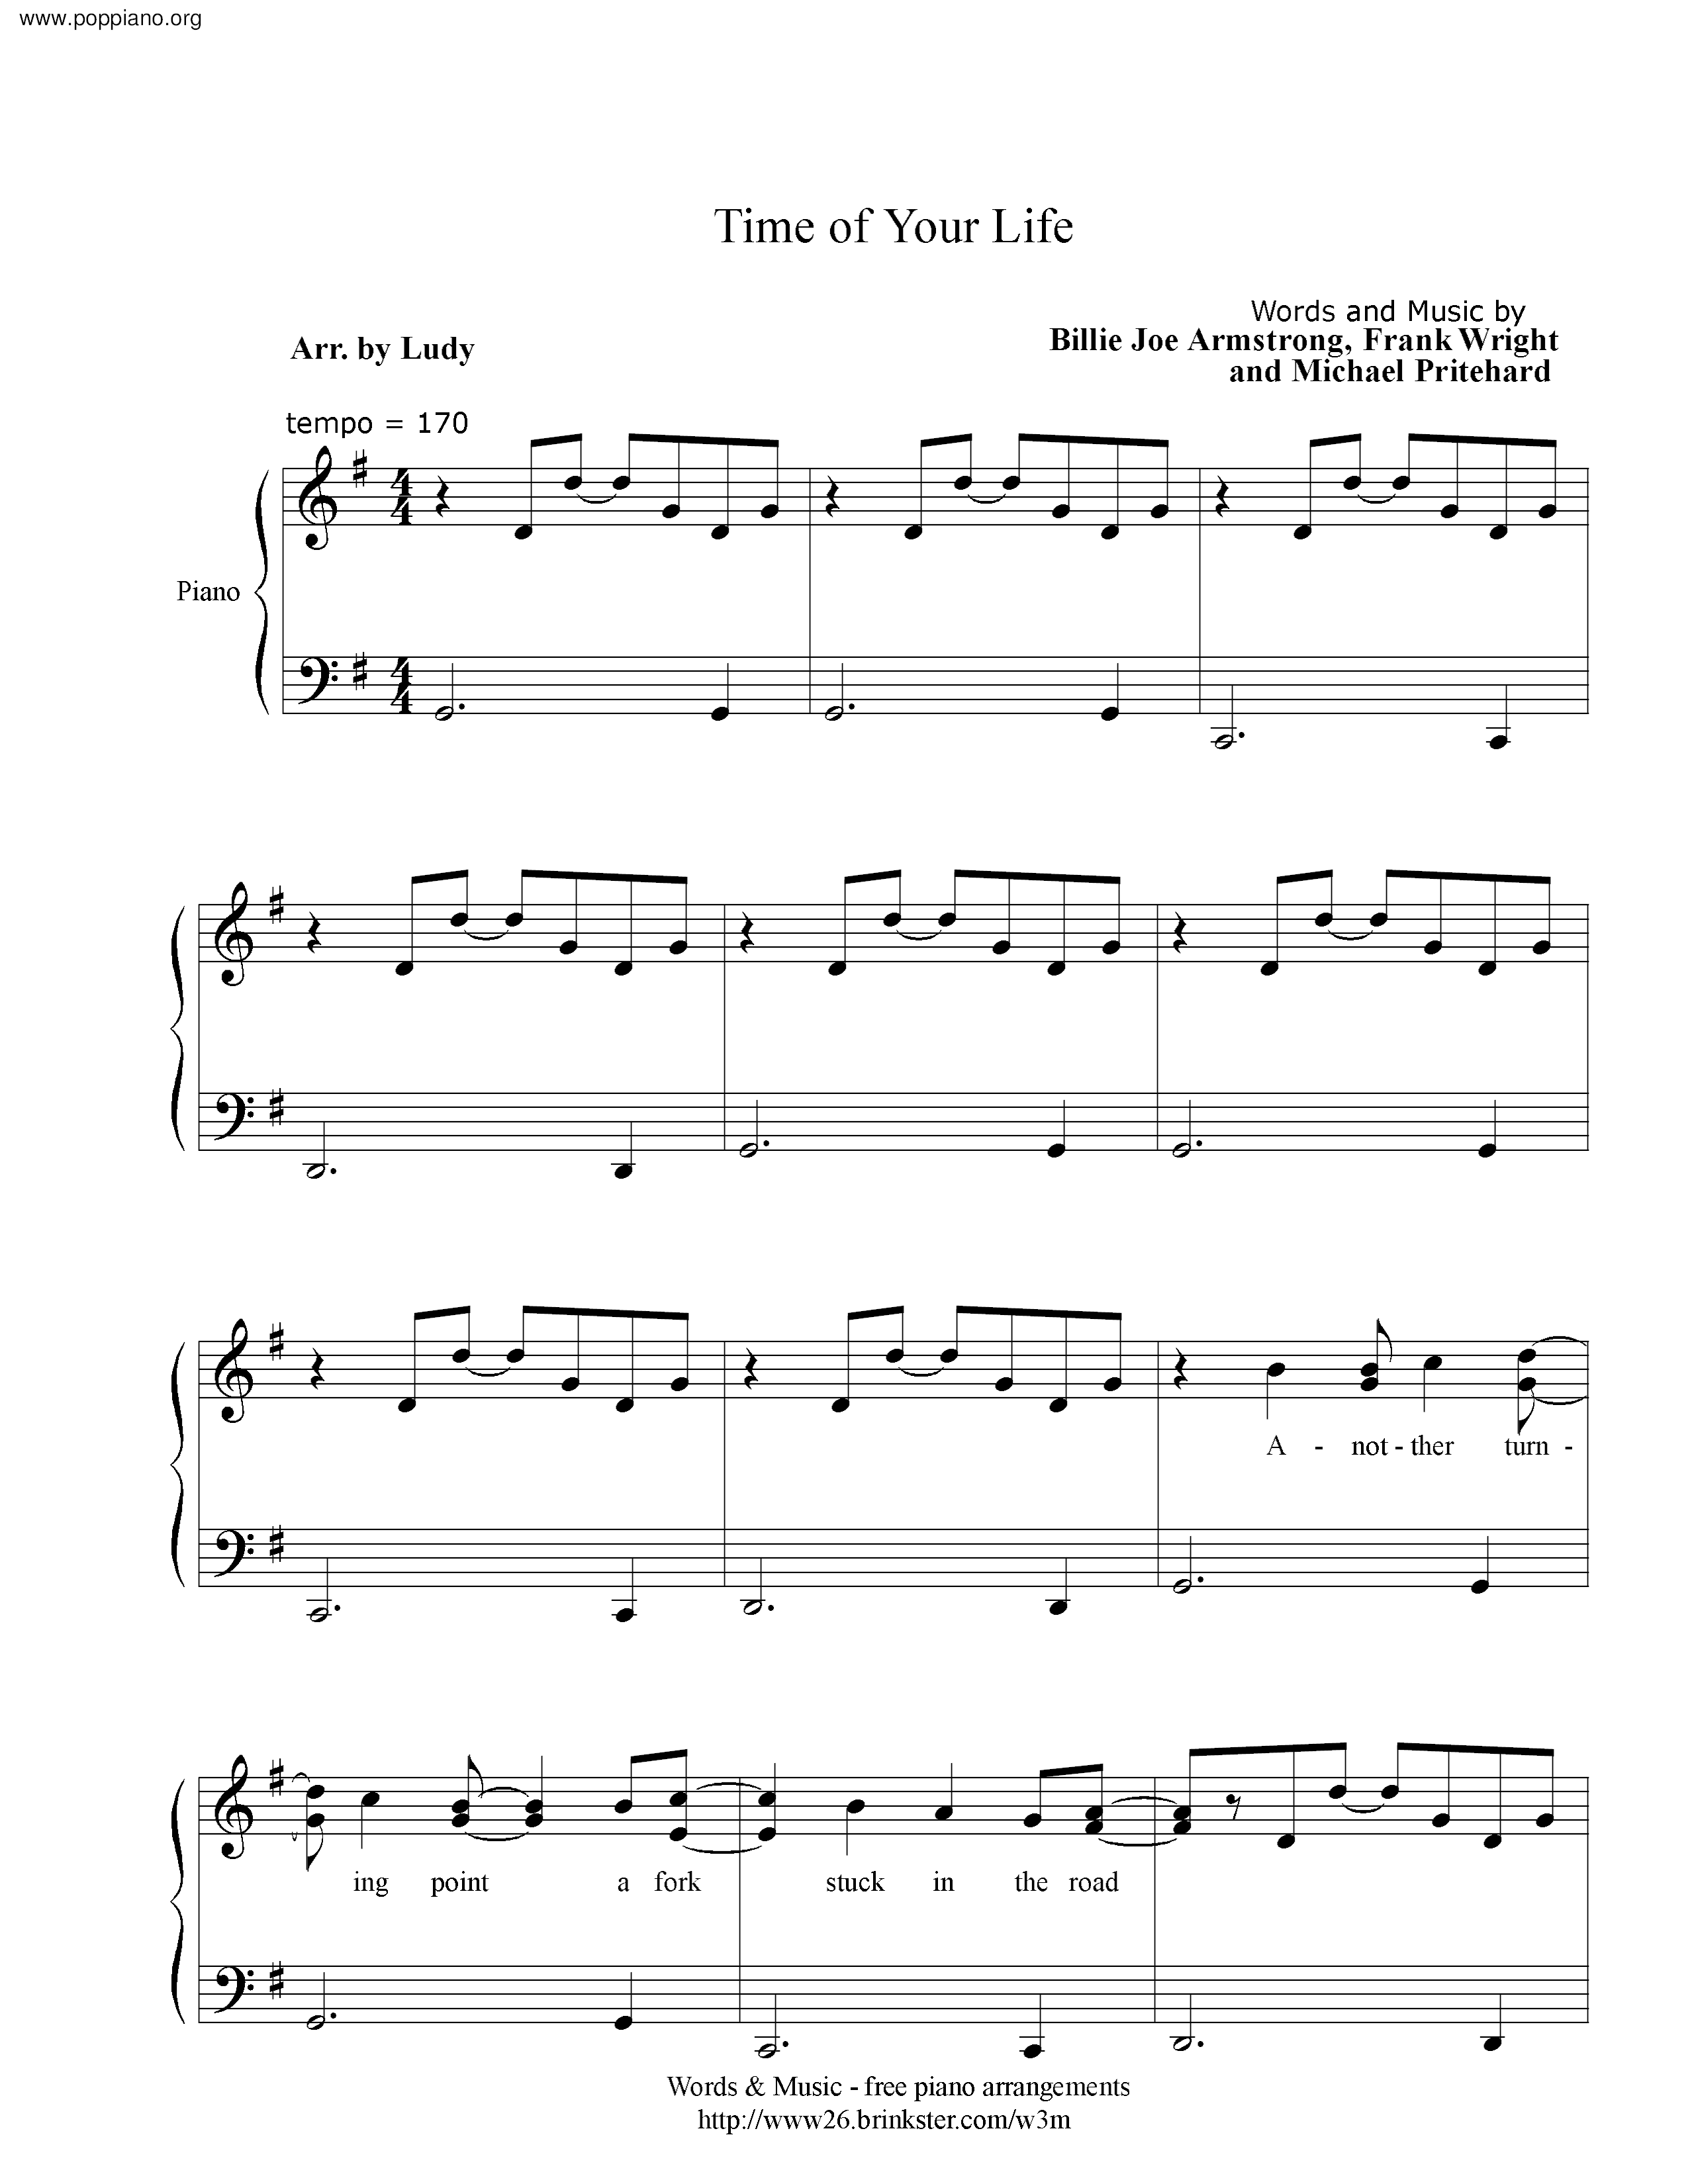 time of your life sheet music free